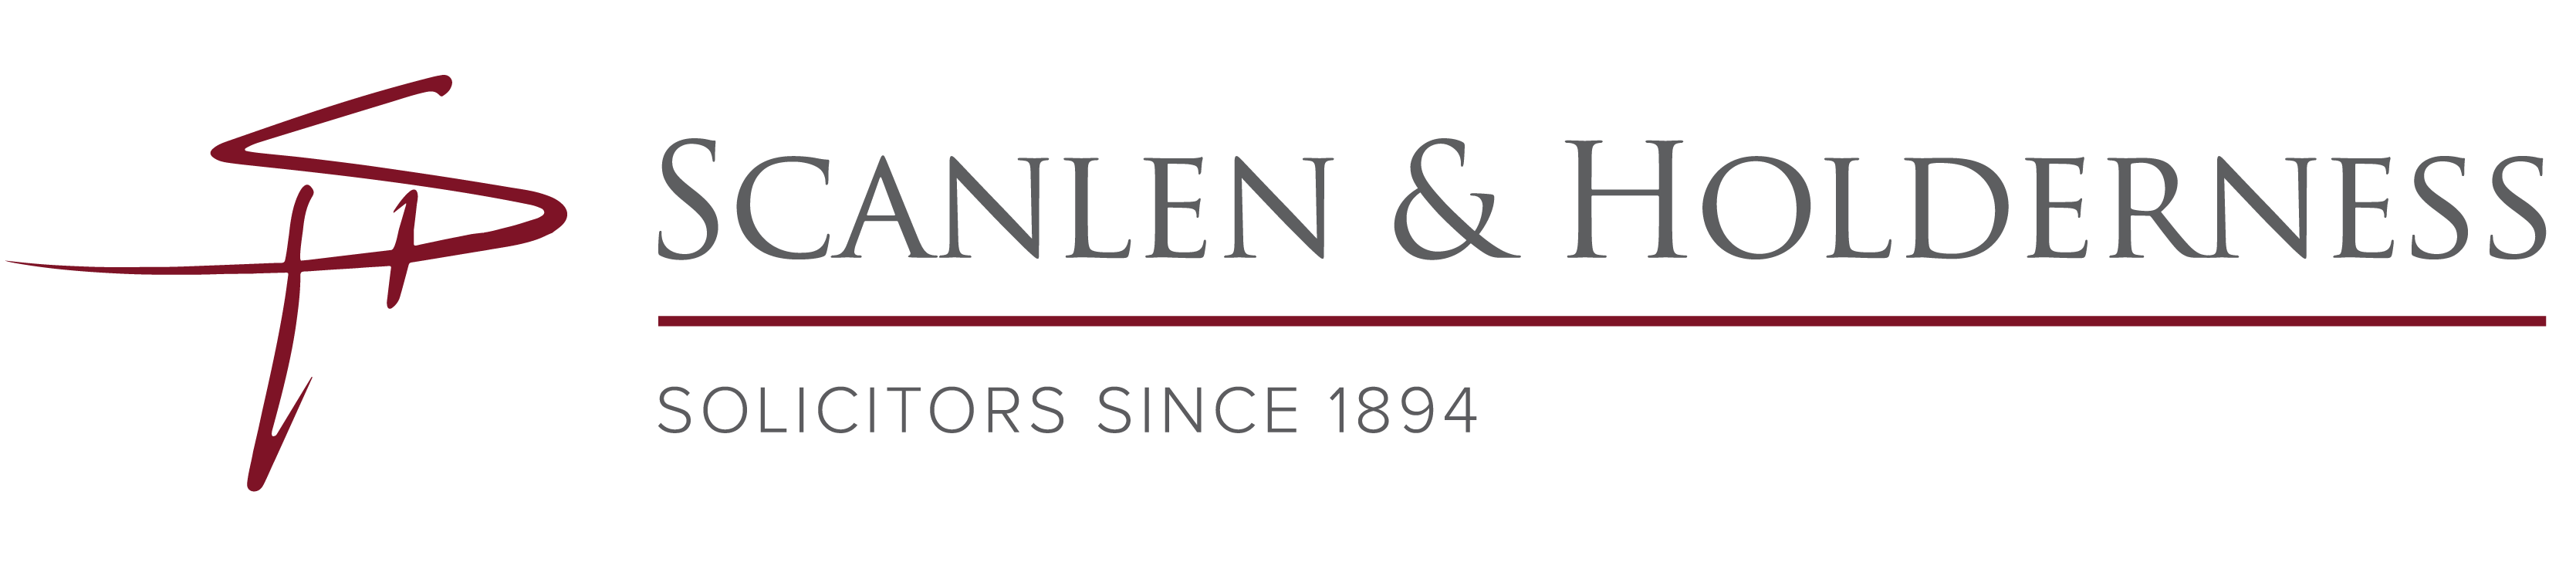 SCANLEN & HOLDERNESS